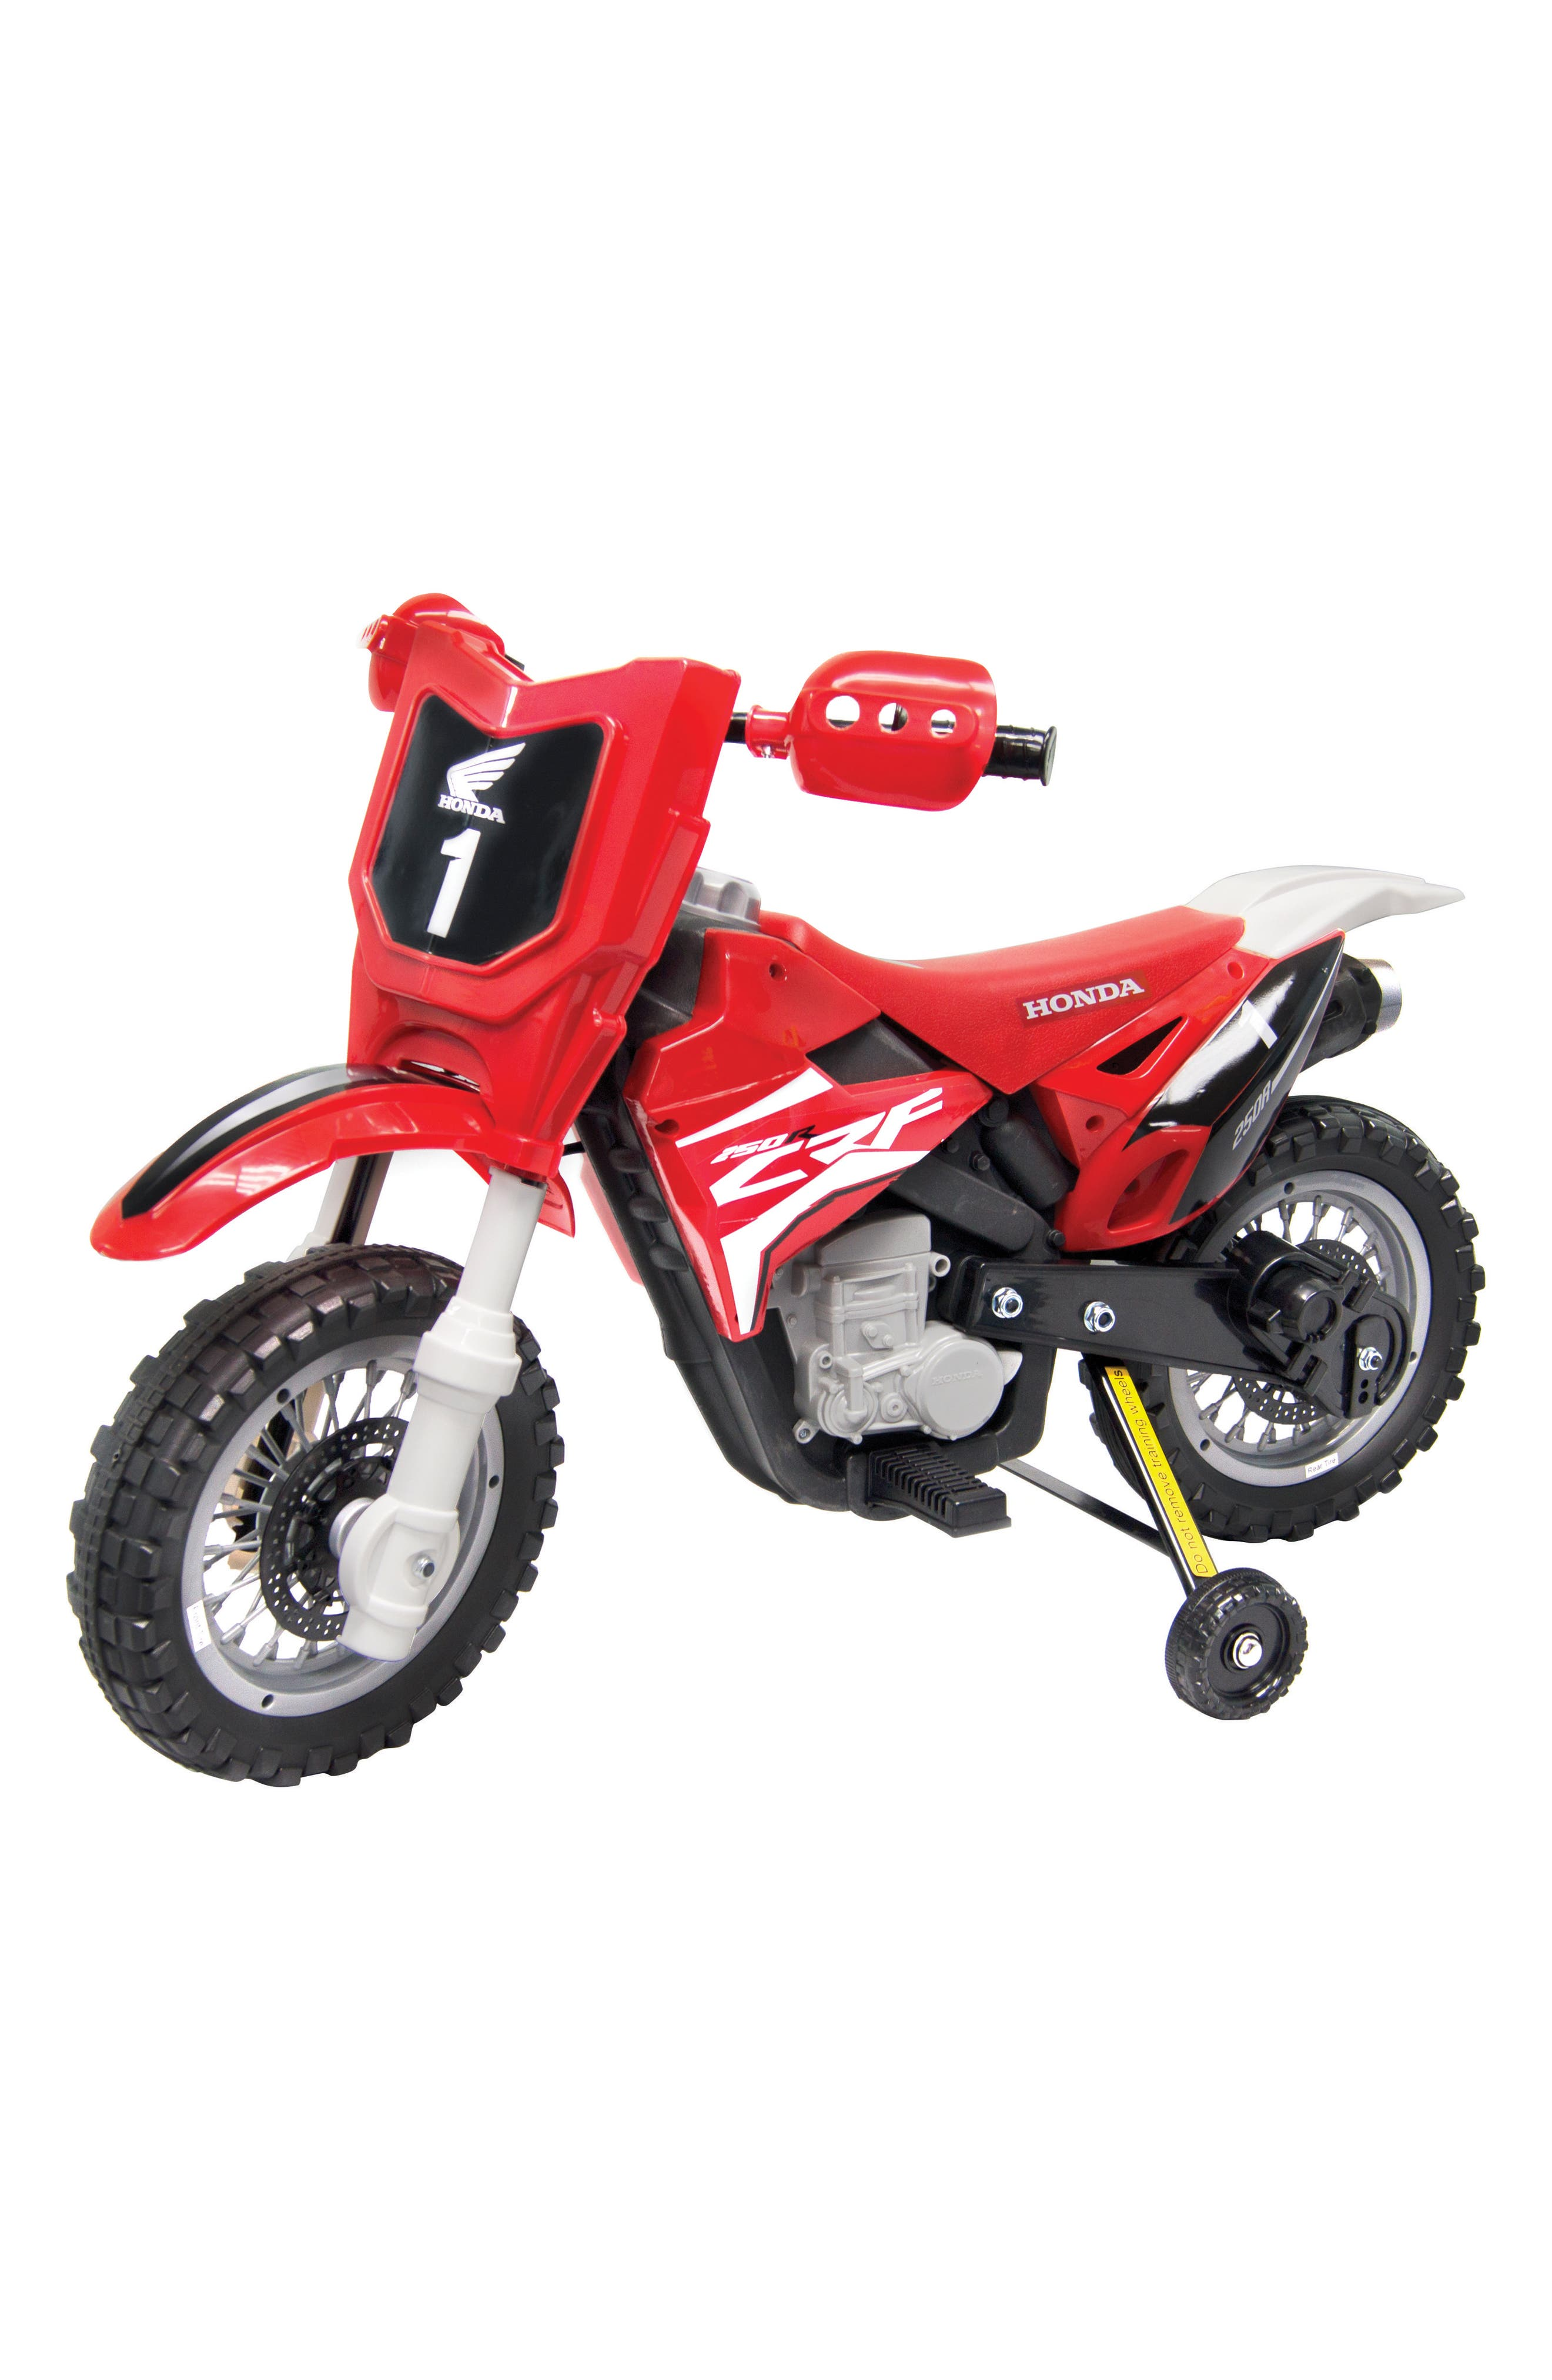 Honda Dirt Bike Ride-On Toy Motorcycle,                             Alternate thumbnail 6, color,                             RED